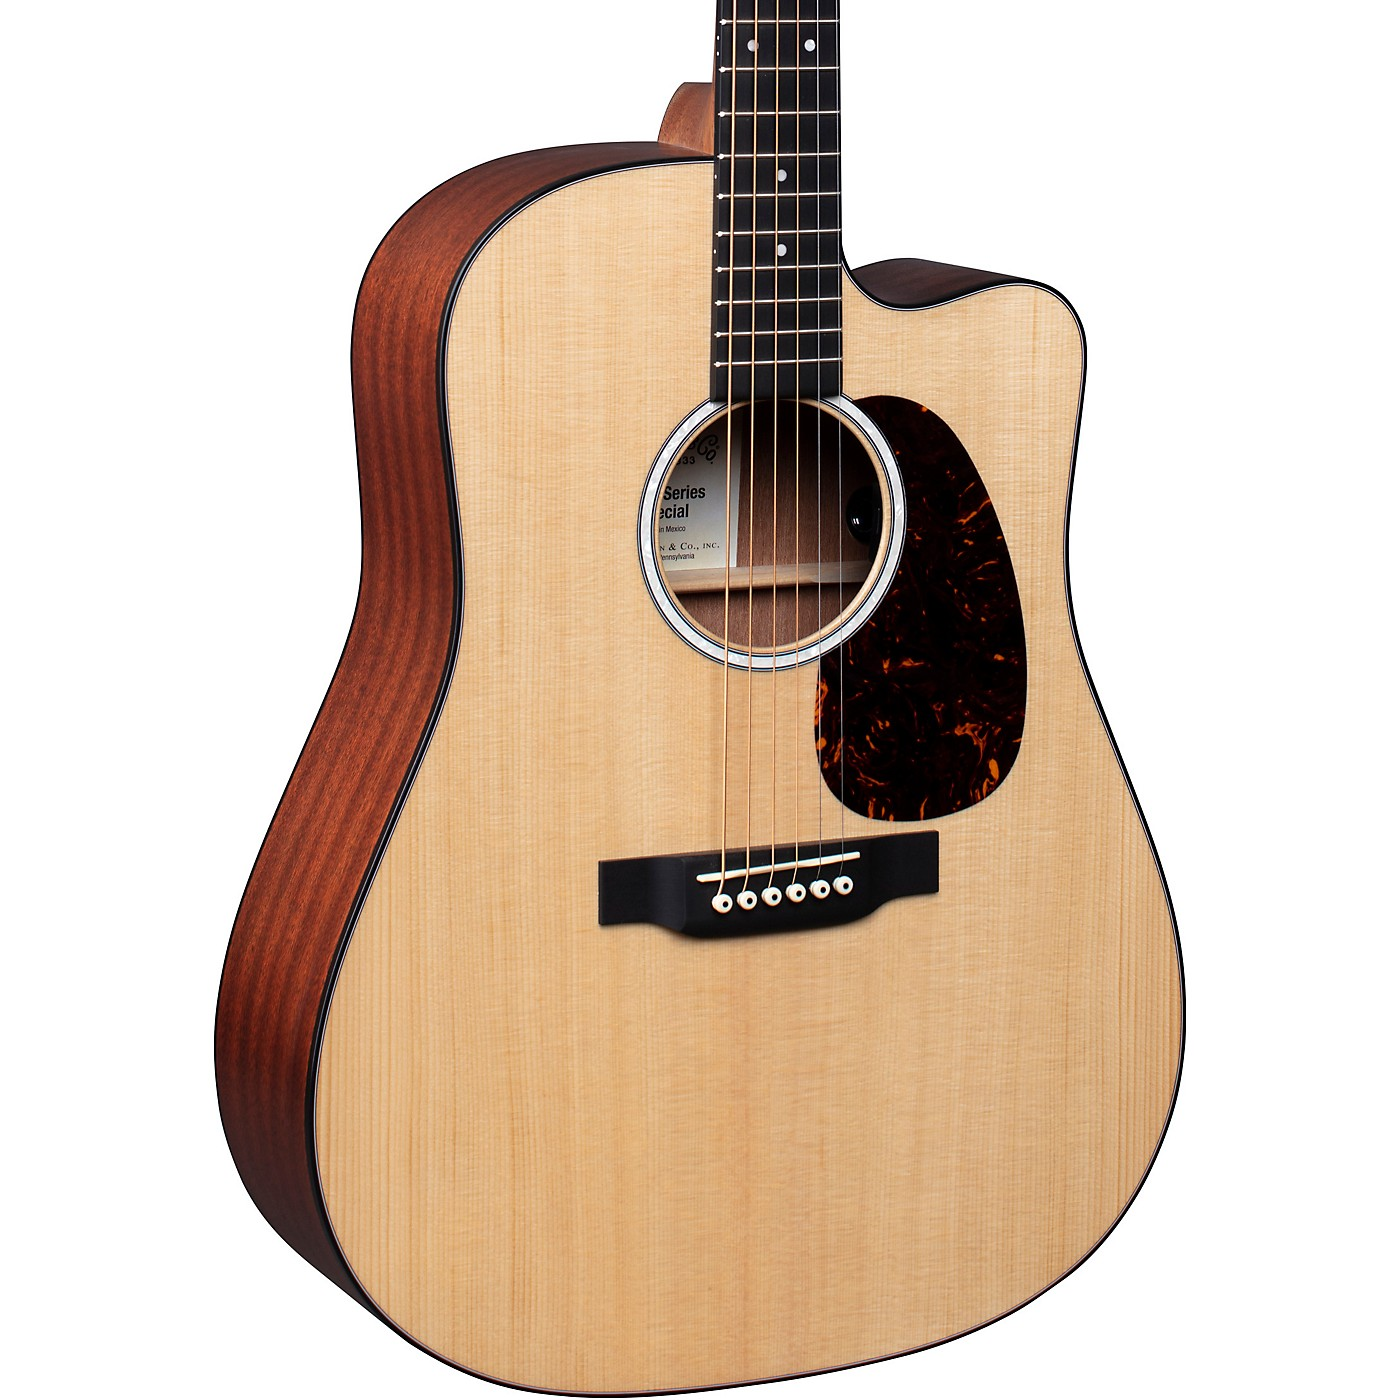 Martin Special Dreadnought Cutaway 11E Road Series Style Acoustic-Electric Guitar Natural thumbnail